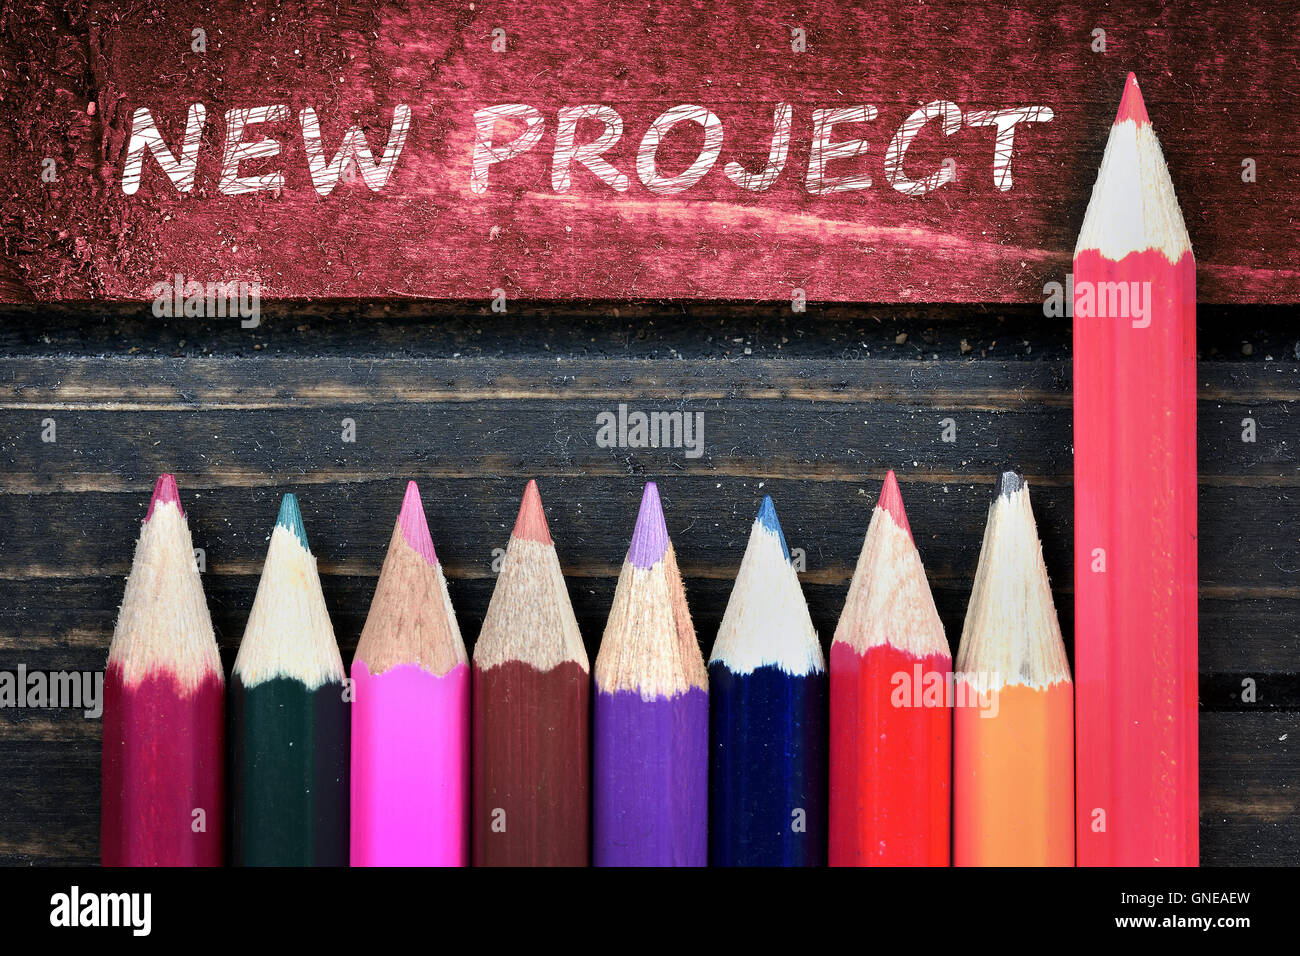 New Project text and group of pencil on wooden table - Stock Image